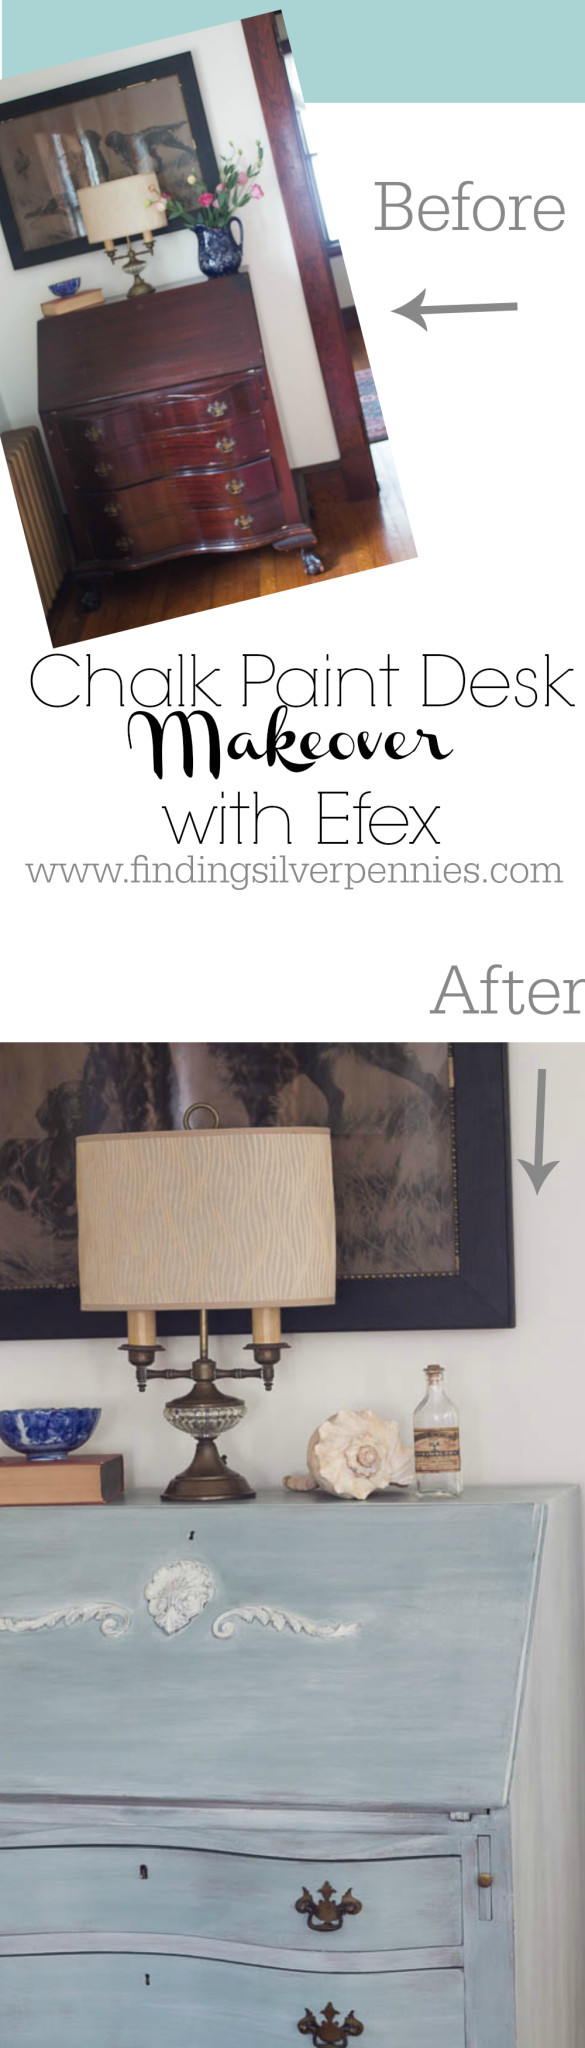 Chalk Paint and Efex Desk Makeover